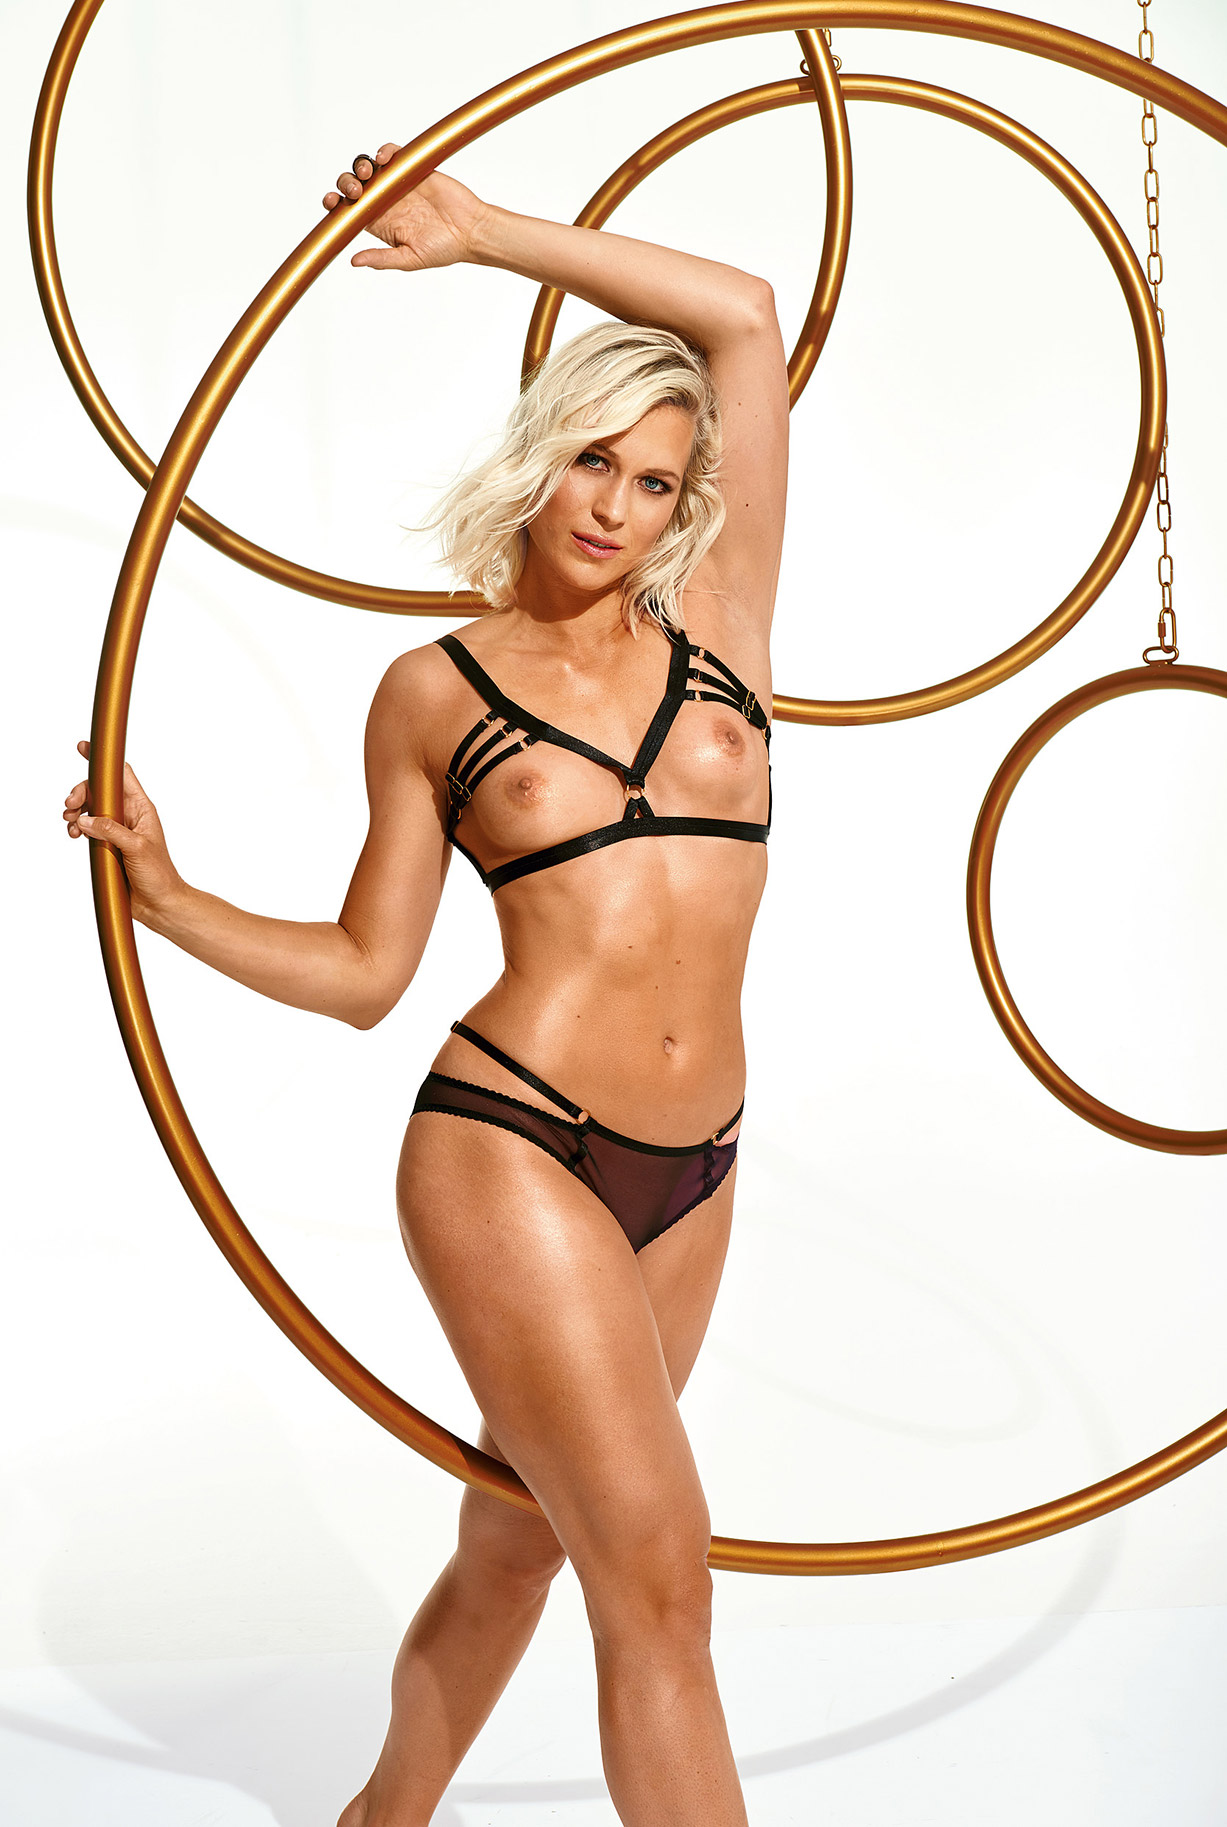 German-Nude-Olympic-Stars-for-Playboy-3.jpg